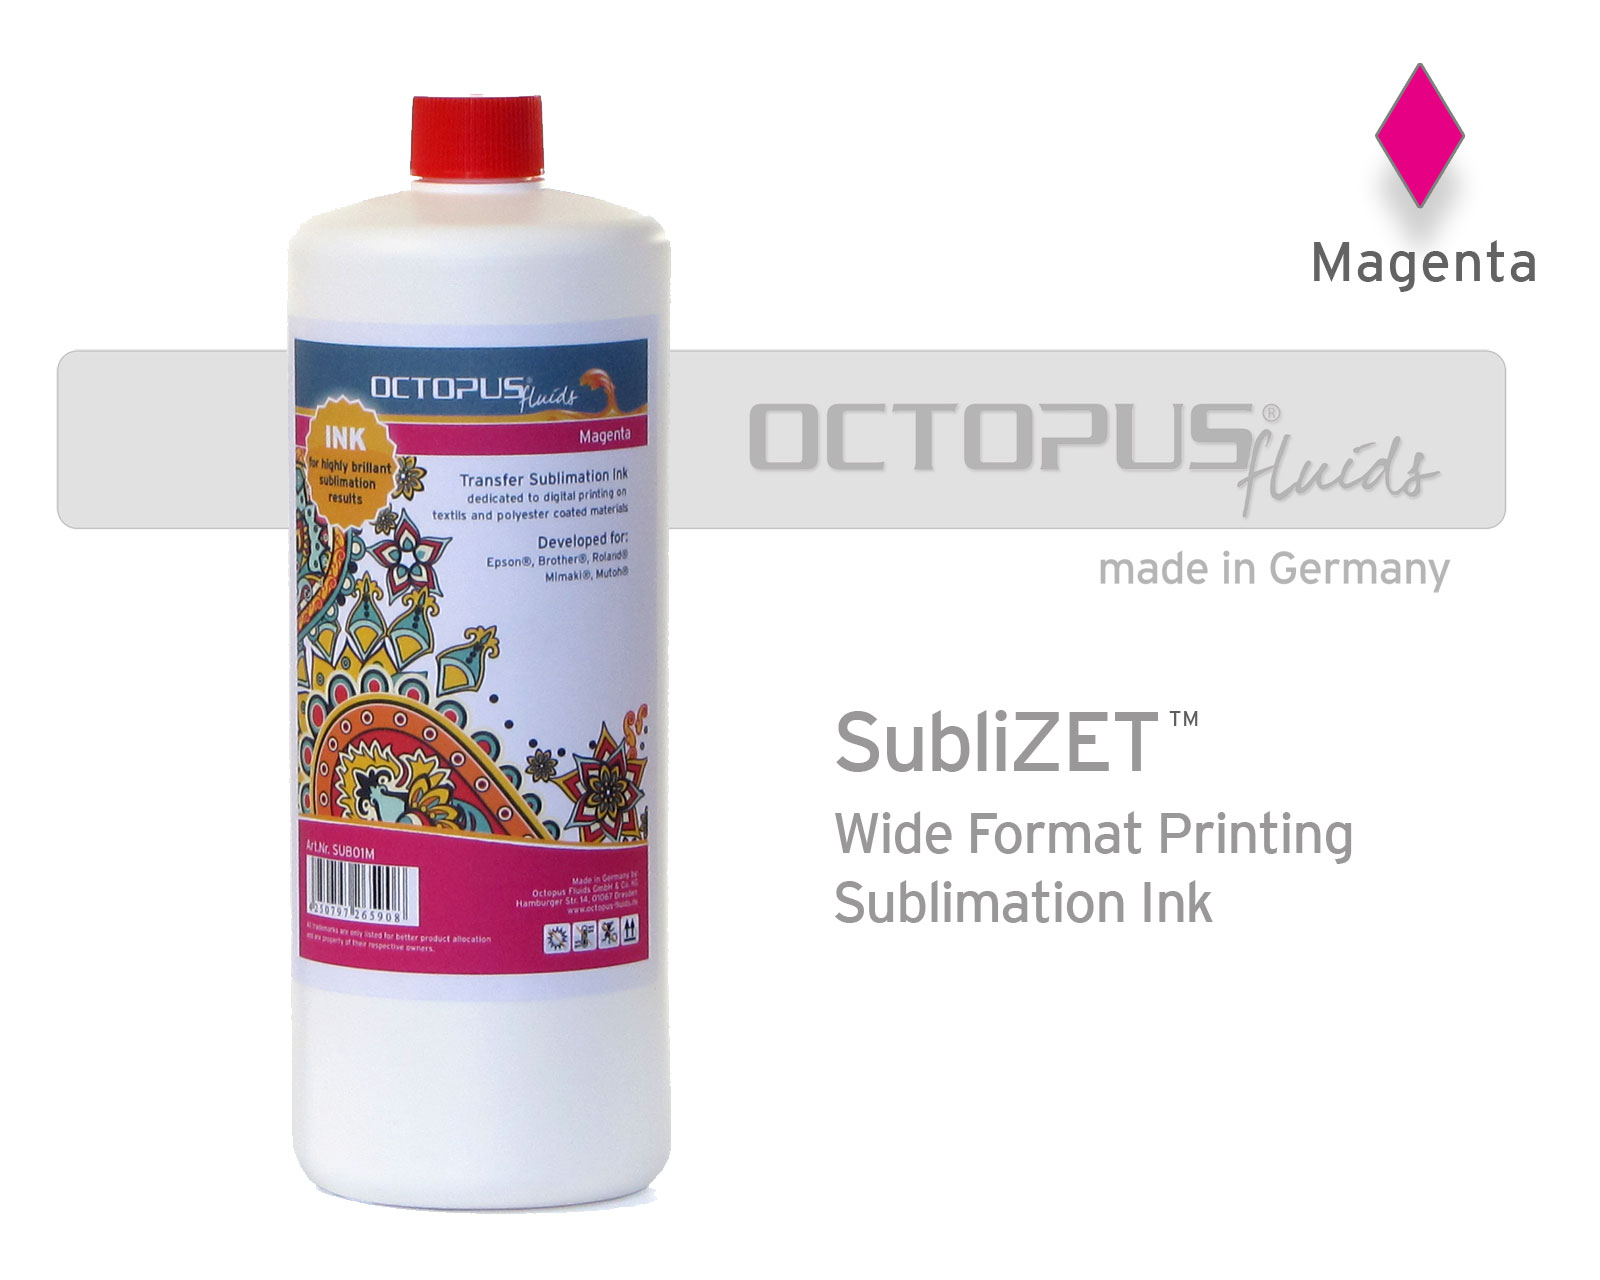 Sublimation ink for Epson, Brother, Roland, Mimaki, magenta